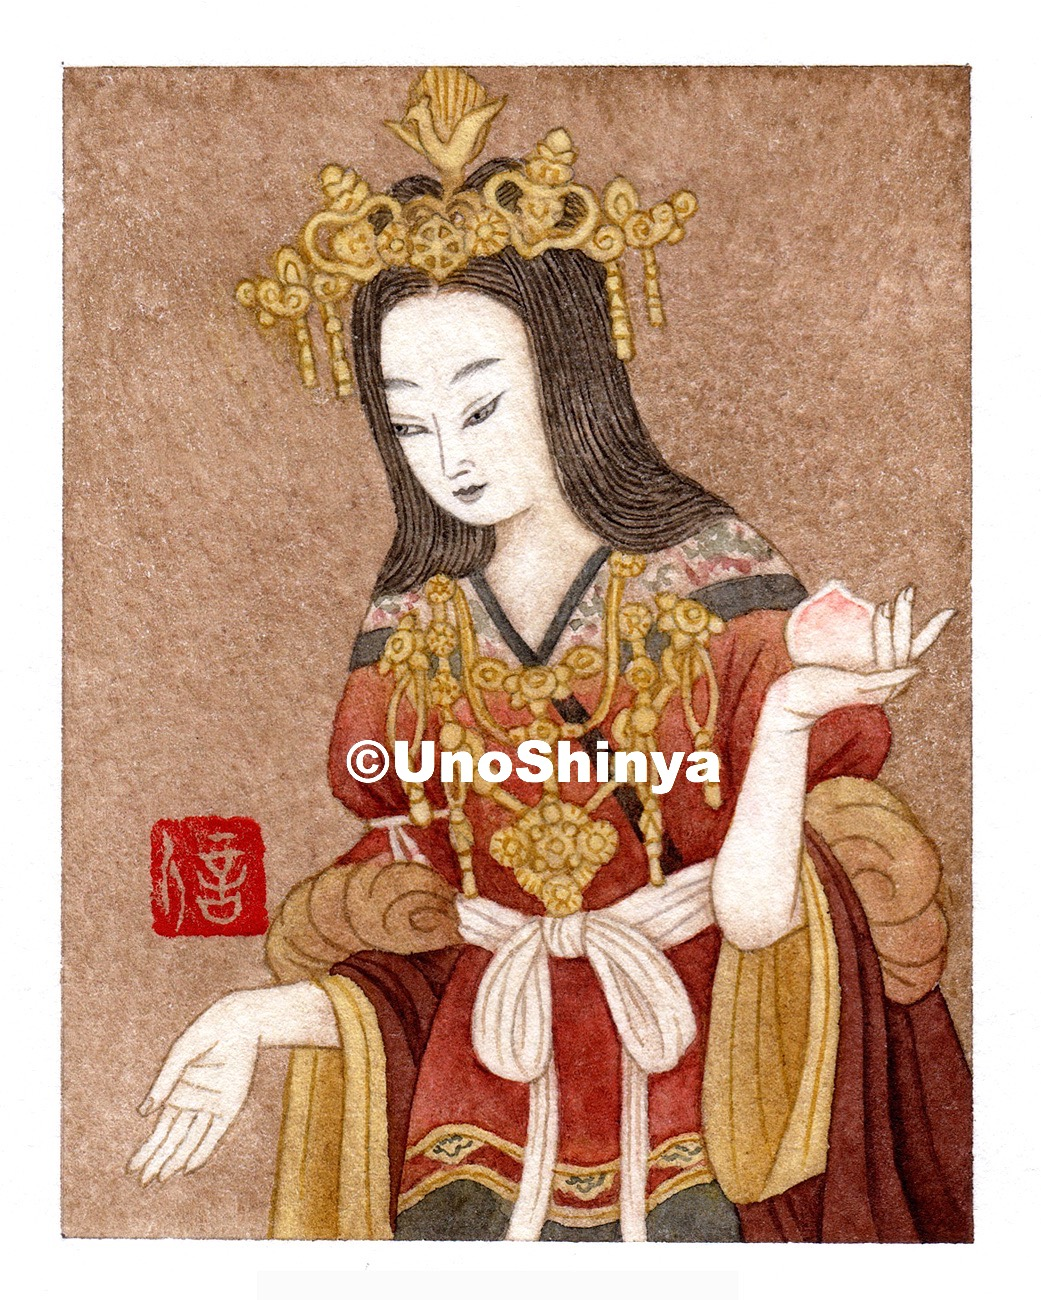 「Kissyoten 吉祥天」| shinya uno illustration